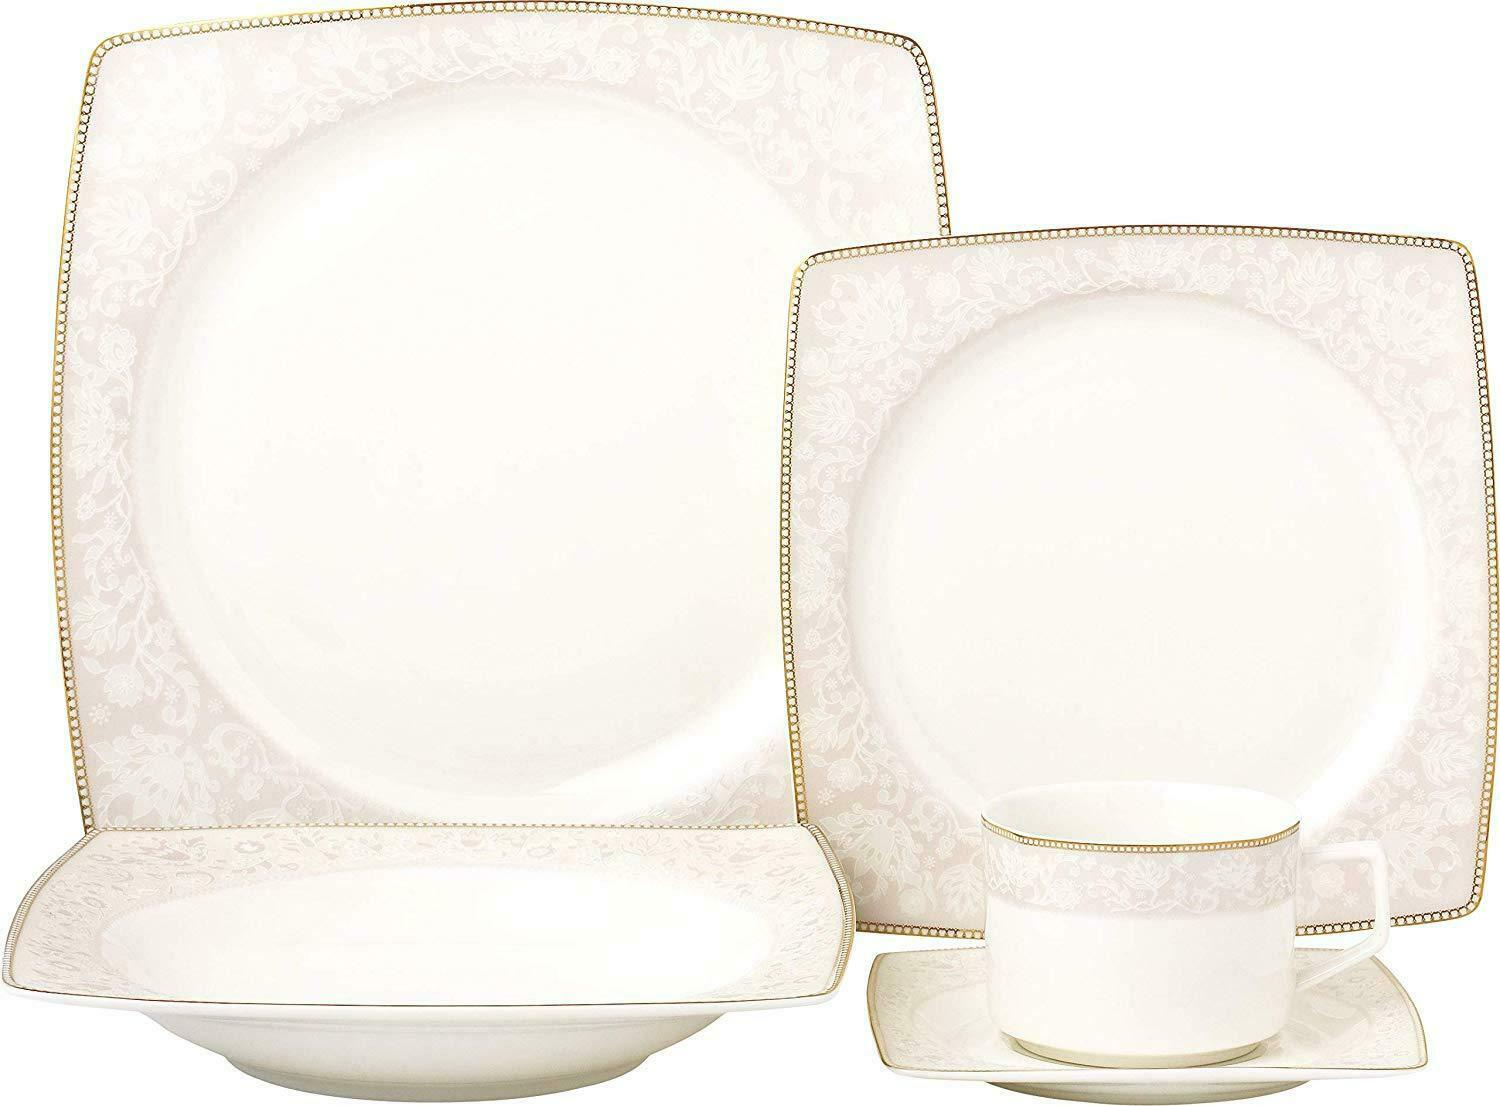 Royalty Porcelain fantaisie design carré 20-pc Dinnerware Set  rose Blossom